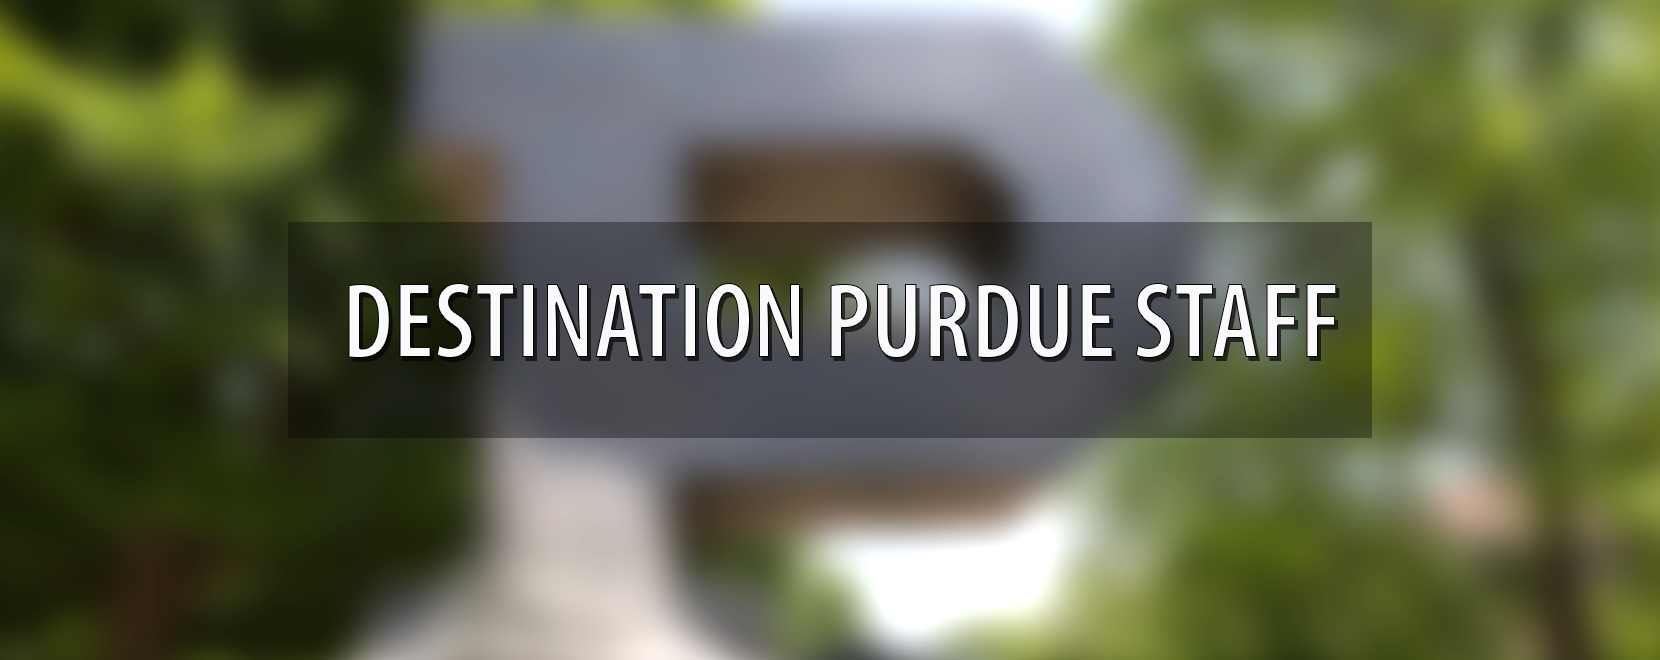 The Destination Purdue Staff: Volume 23, Number 1, Spring 2018